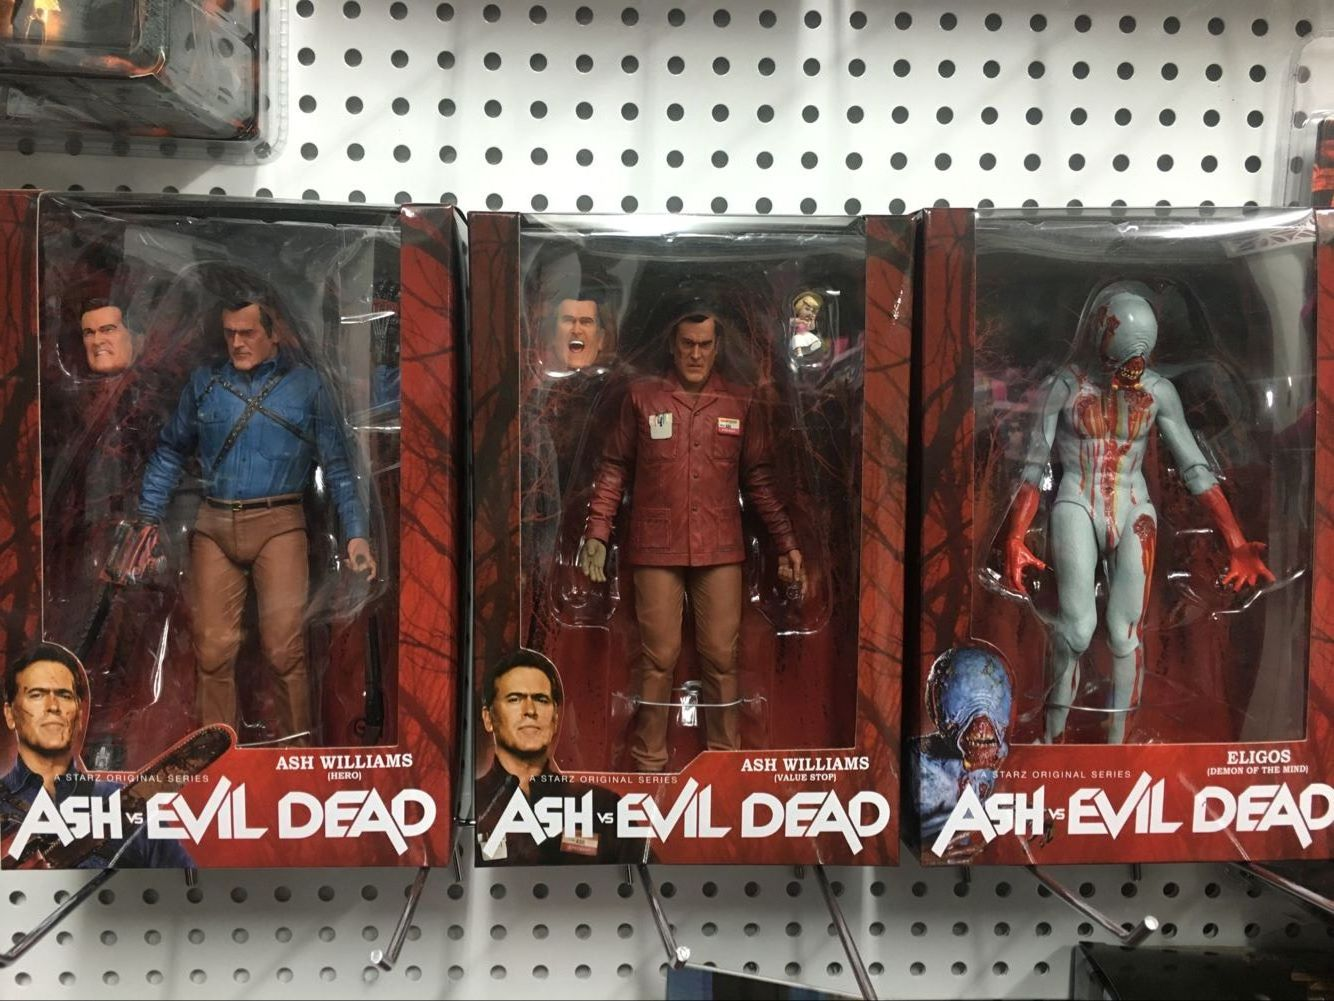 NECA The Evil Dead Ash Vs Evil Dead Ash Williams Eligos PVC Action Figure Collectible Model Toy 18cm KT3427 the wangs vs the world